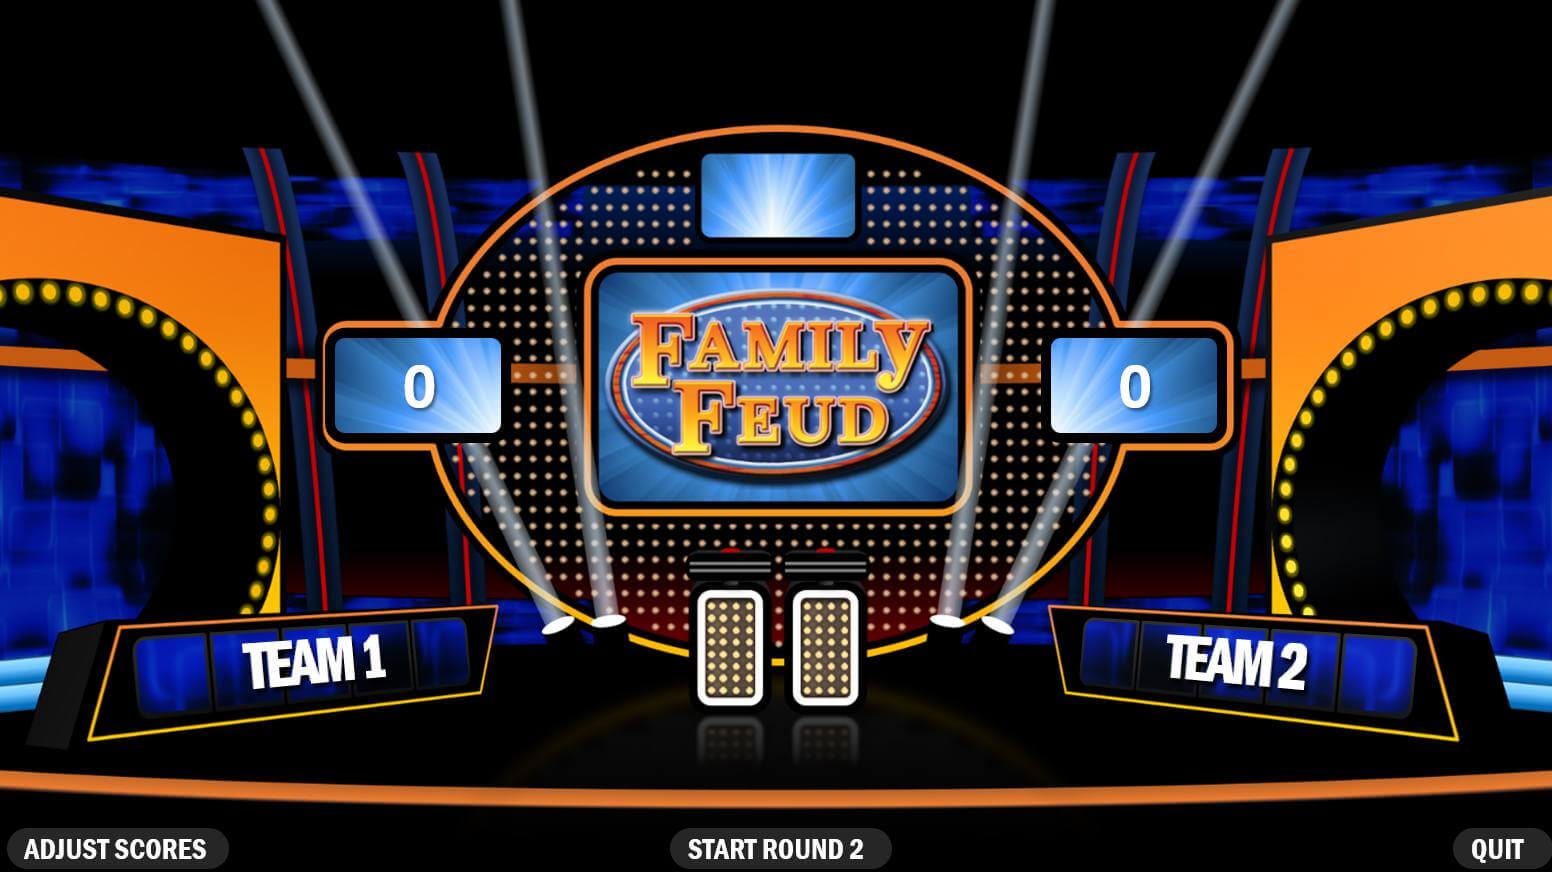 Family Feud Powerpoint Template Free Download - Calep Within Family Feud Game Template Powerpoint Free